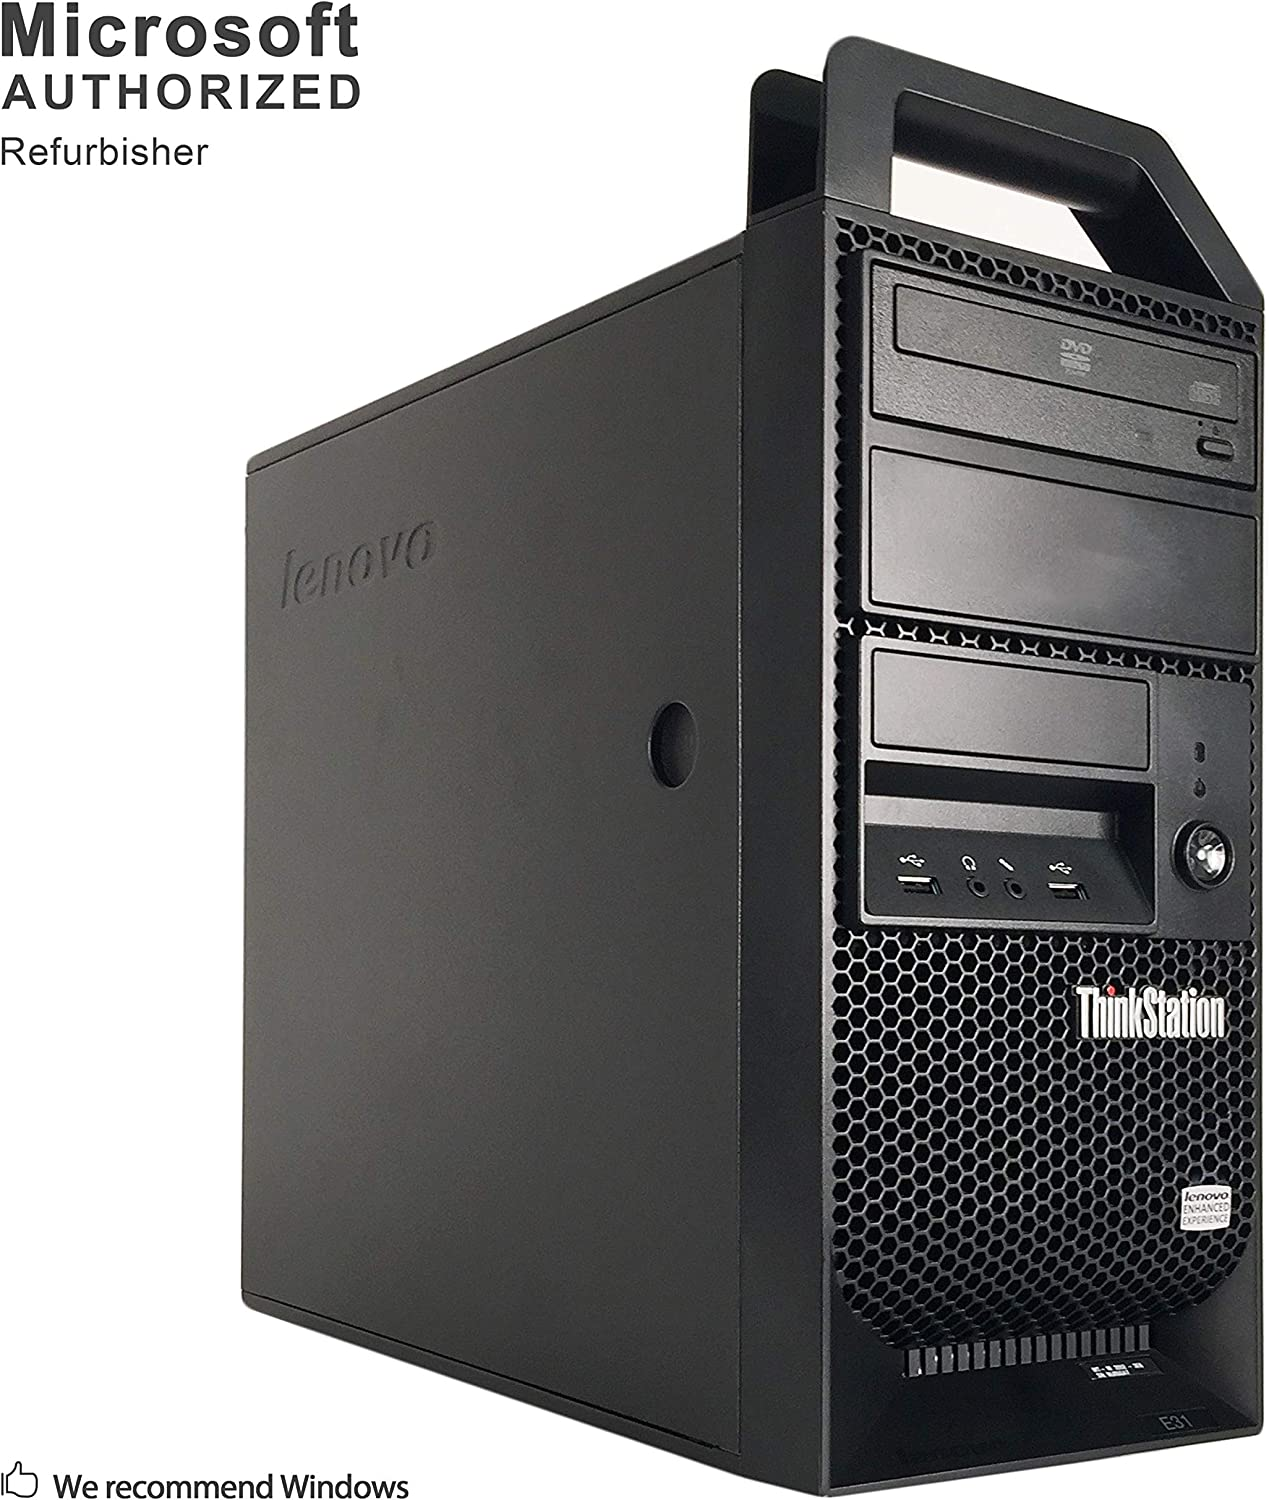 Lenovo ThinkStation E31 Tower PC, Intel Quad Core i5-3470 up to 3.6GHz, 16G DDR3, 240G SSD + 1T, DVD, WiFi, BT 4.0, Windows 10 64 Bit-Multi-Language Supports English/Spanish/French(Renewed)